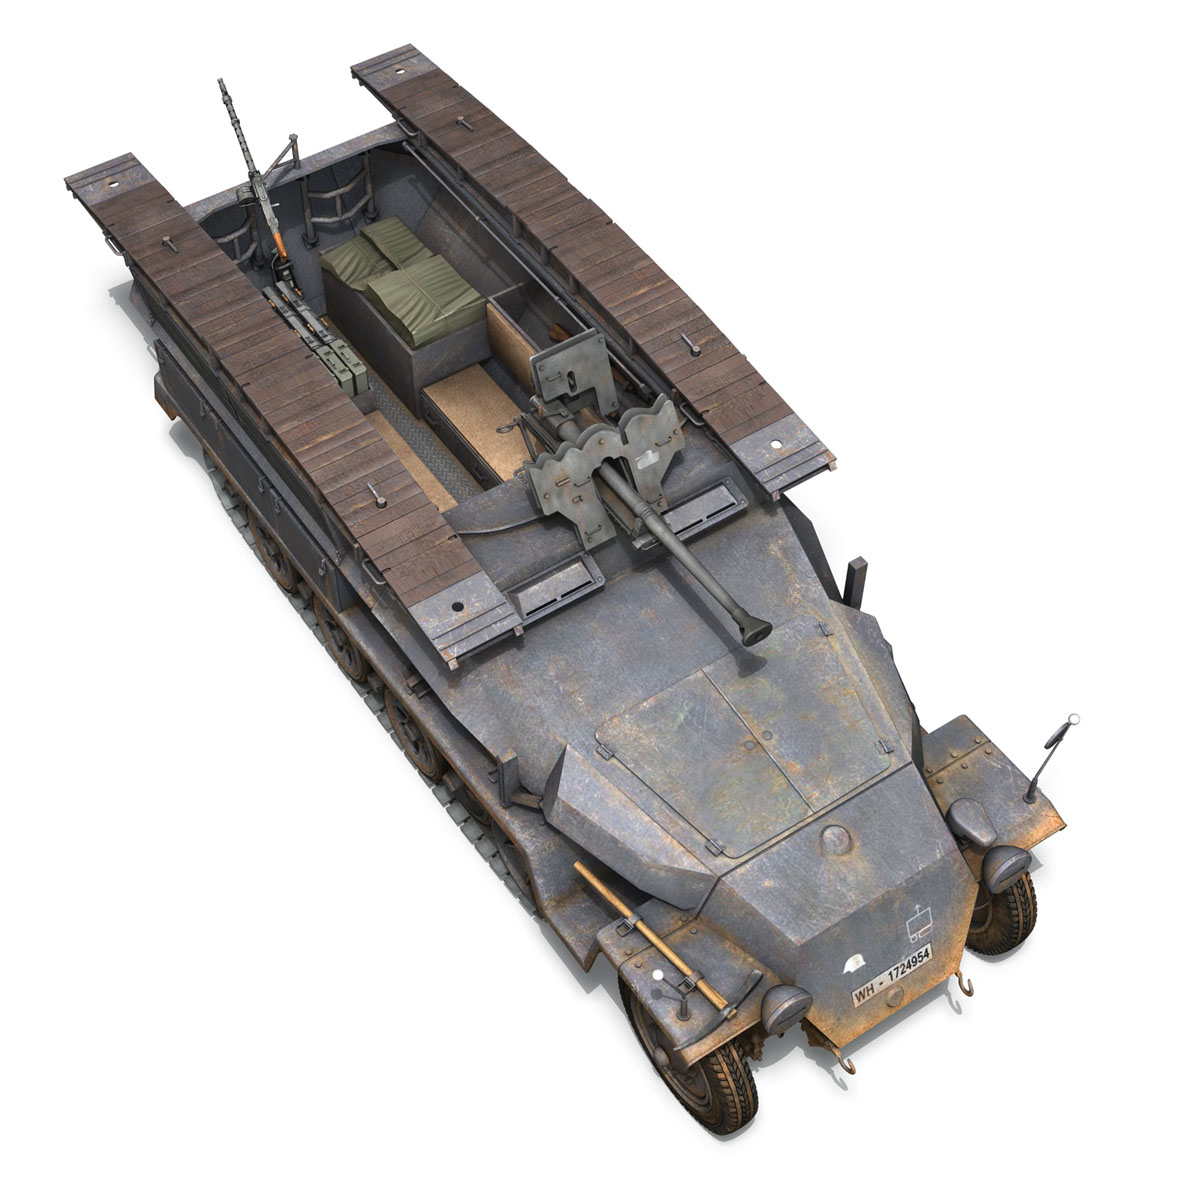 sd.kfz 251/7 ausf.c – pioneer assault bridge 3d model 3ds fbx c4d lwo obj 201526